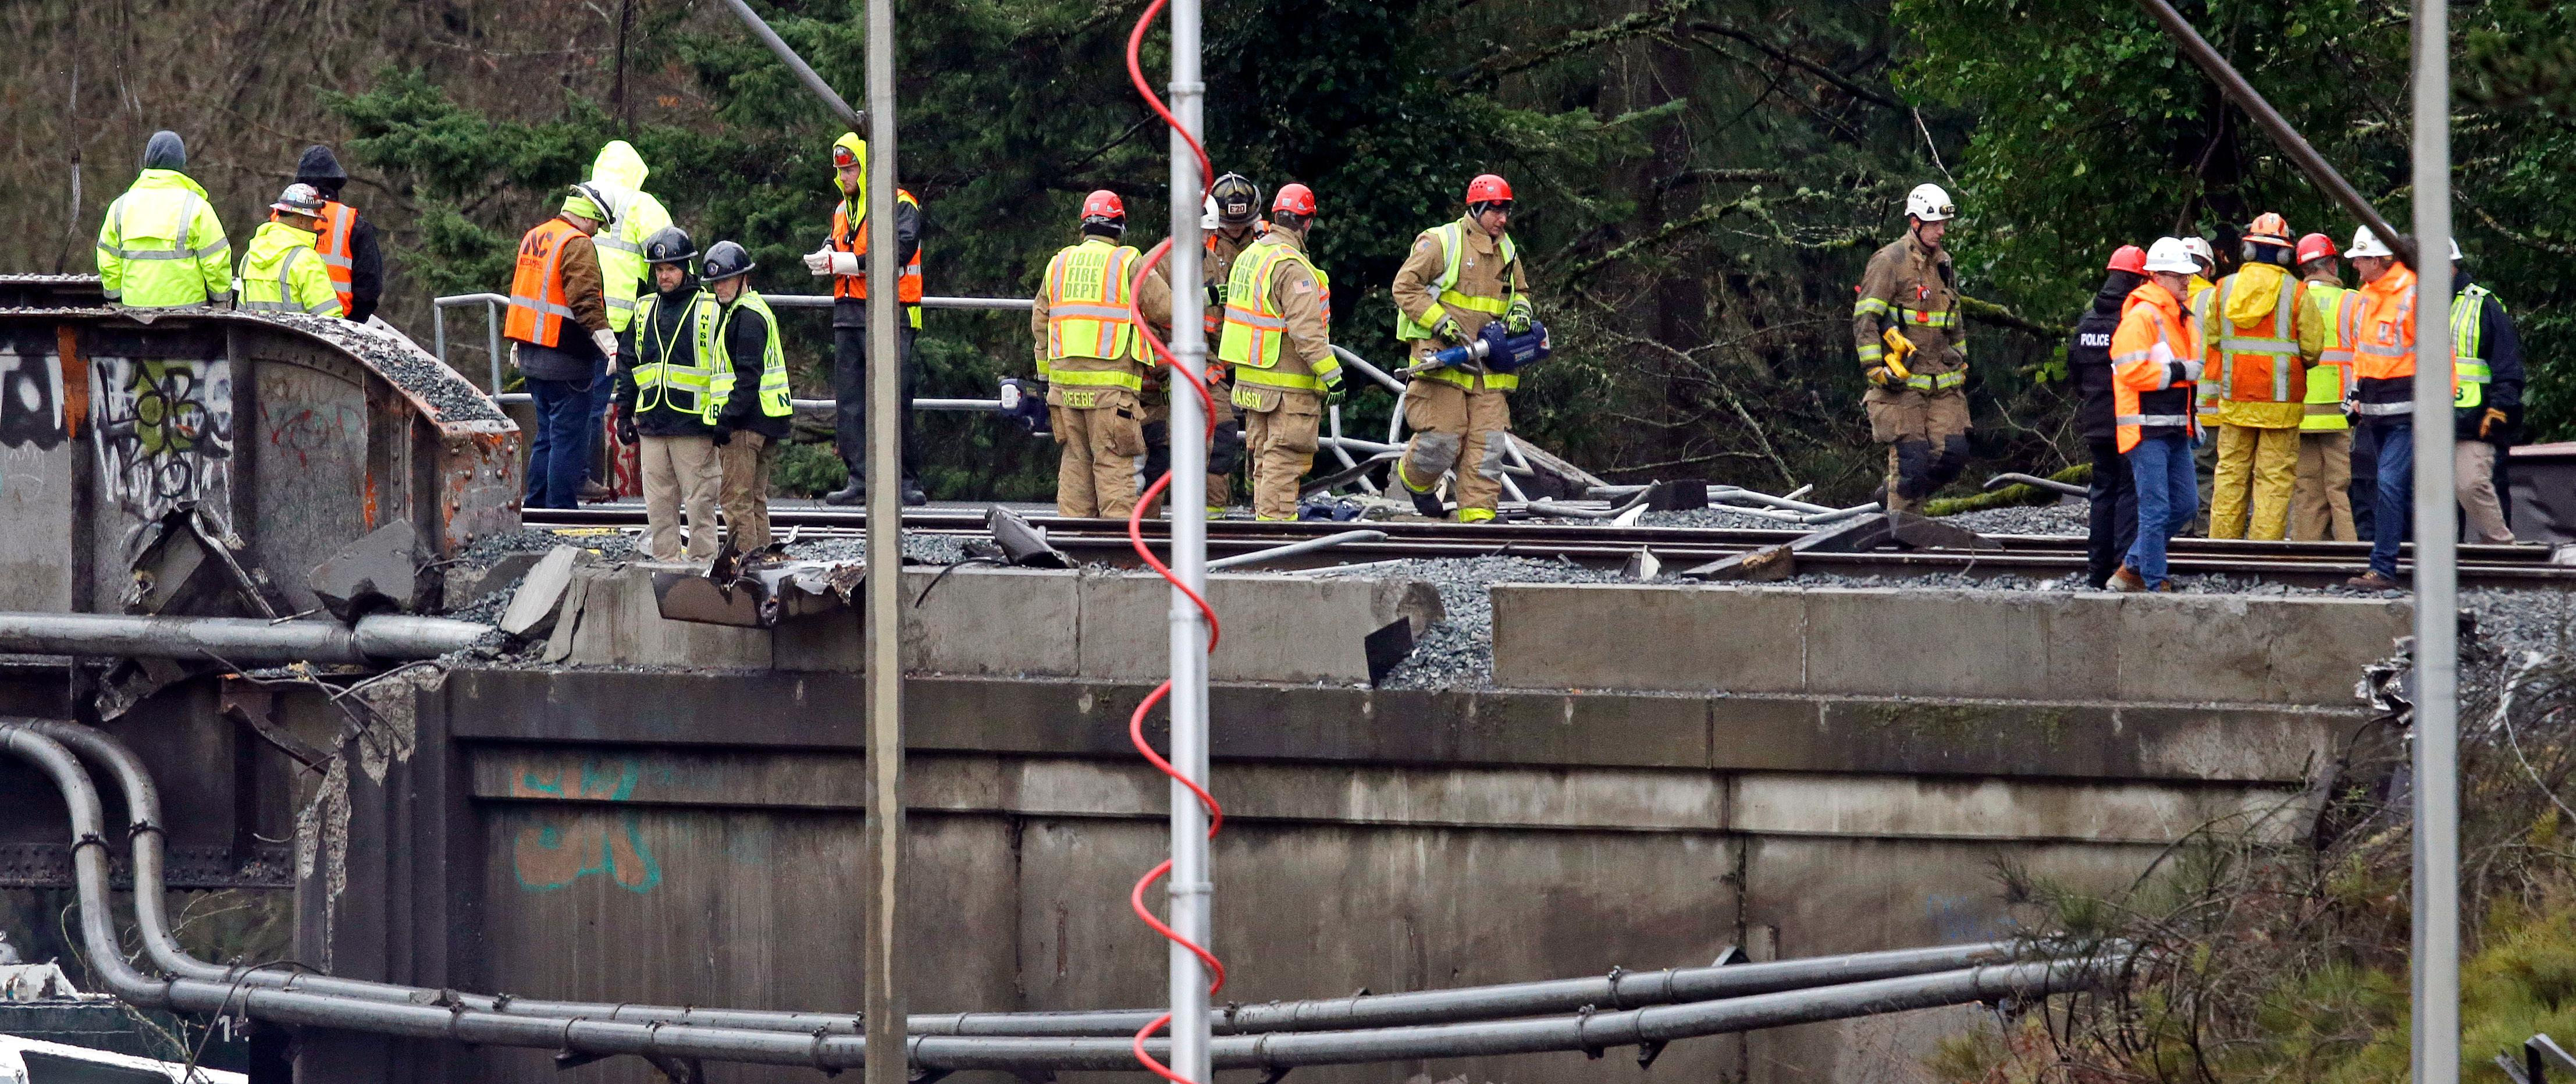 Workers stand atop a damaged railroad bridge at the scene of an Amtrak train crash onto Interstate 5 a day earlier Tuesday, Dec. 19, 2017, in DuPont, Wash. Federal investigators say they don't yet know why the Amtrak train was traveling 50 mph over the speed limit when it derailed Monday south of Seattle.  (AP Photo/Elaine Thompson)